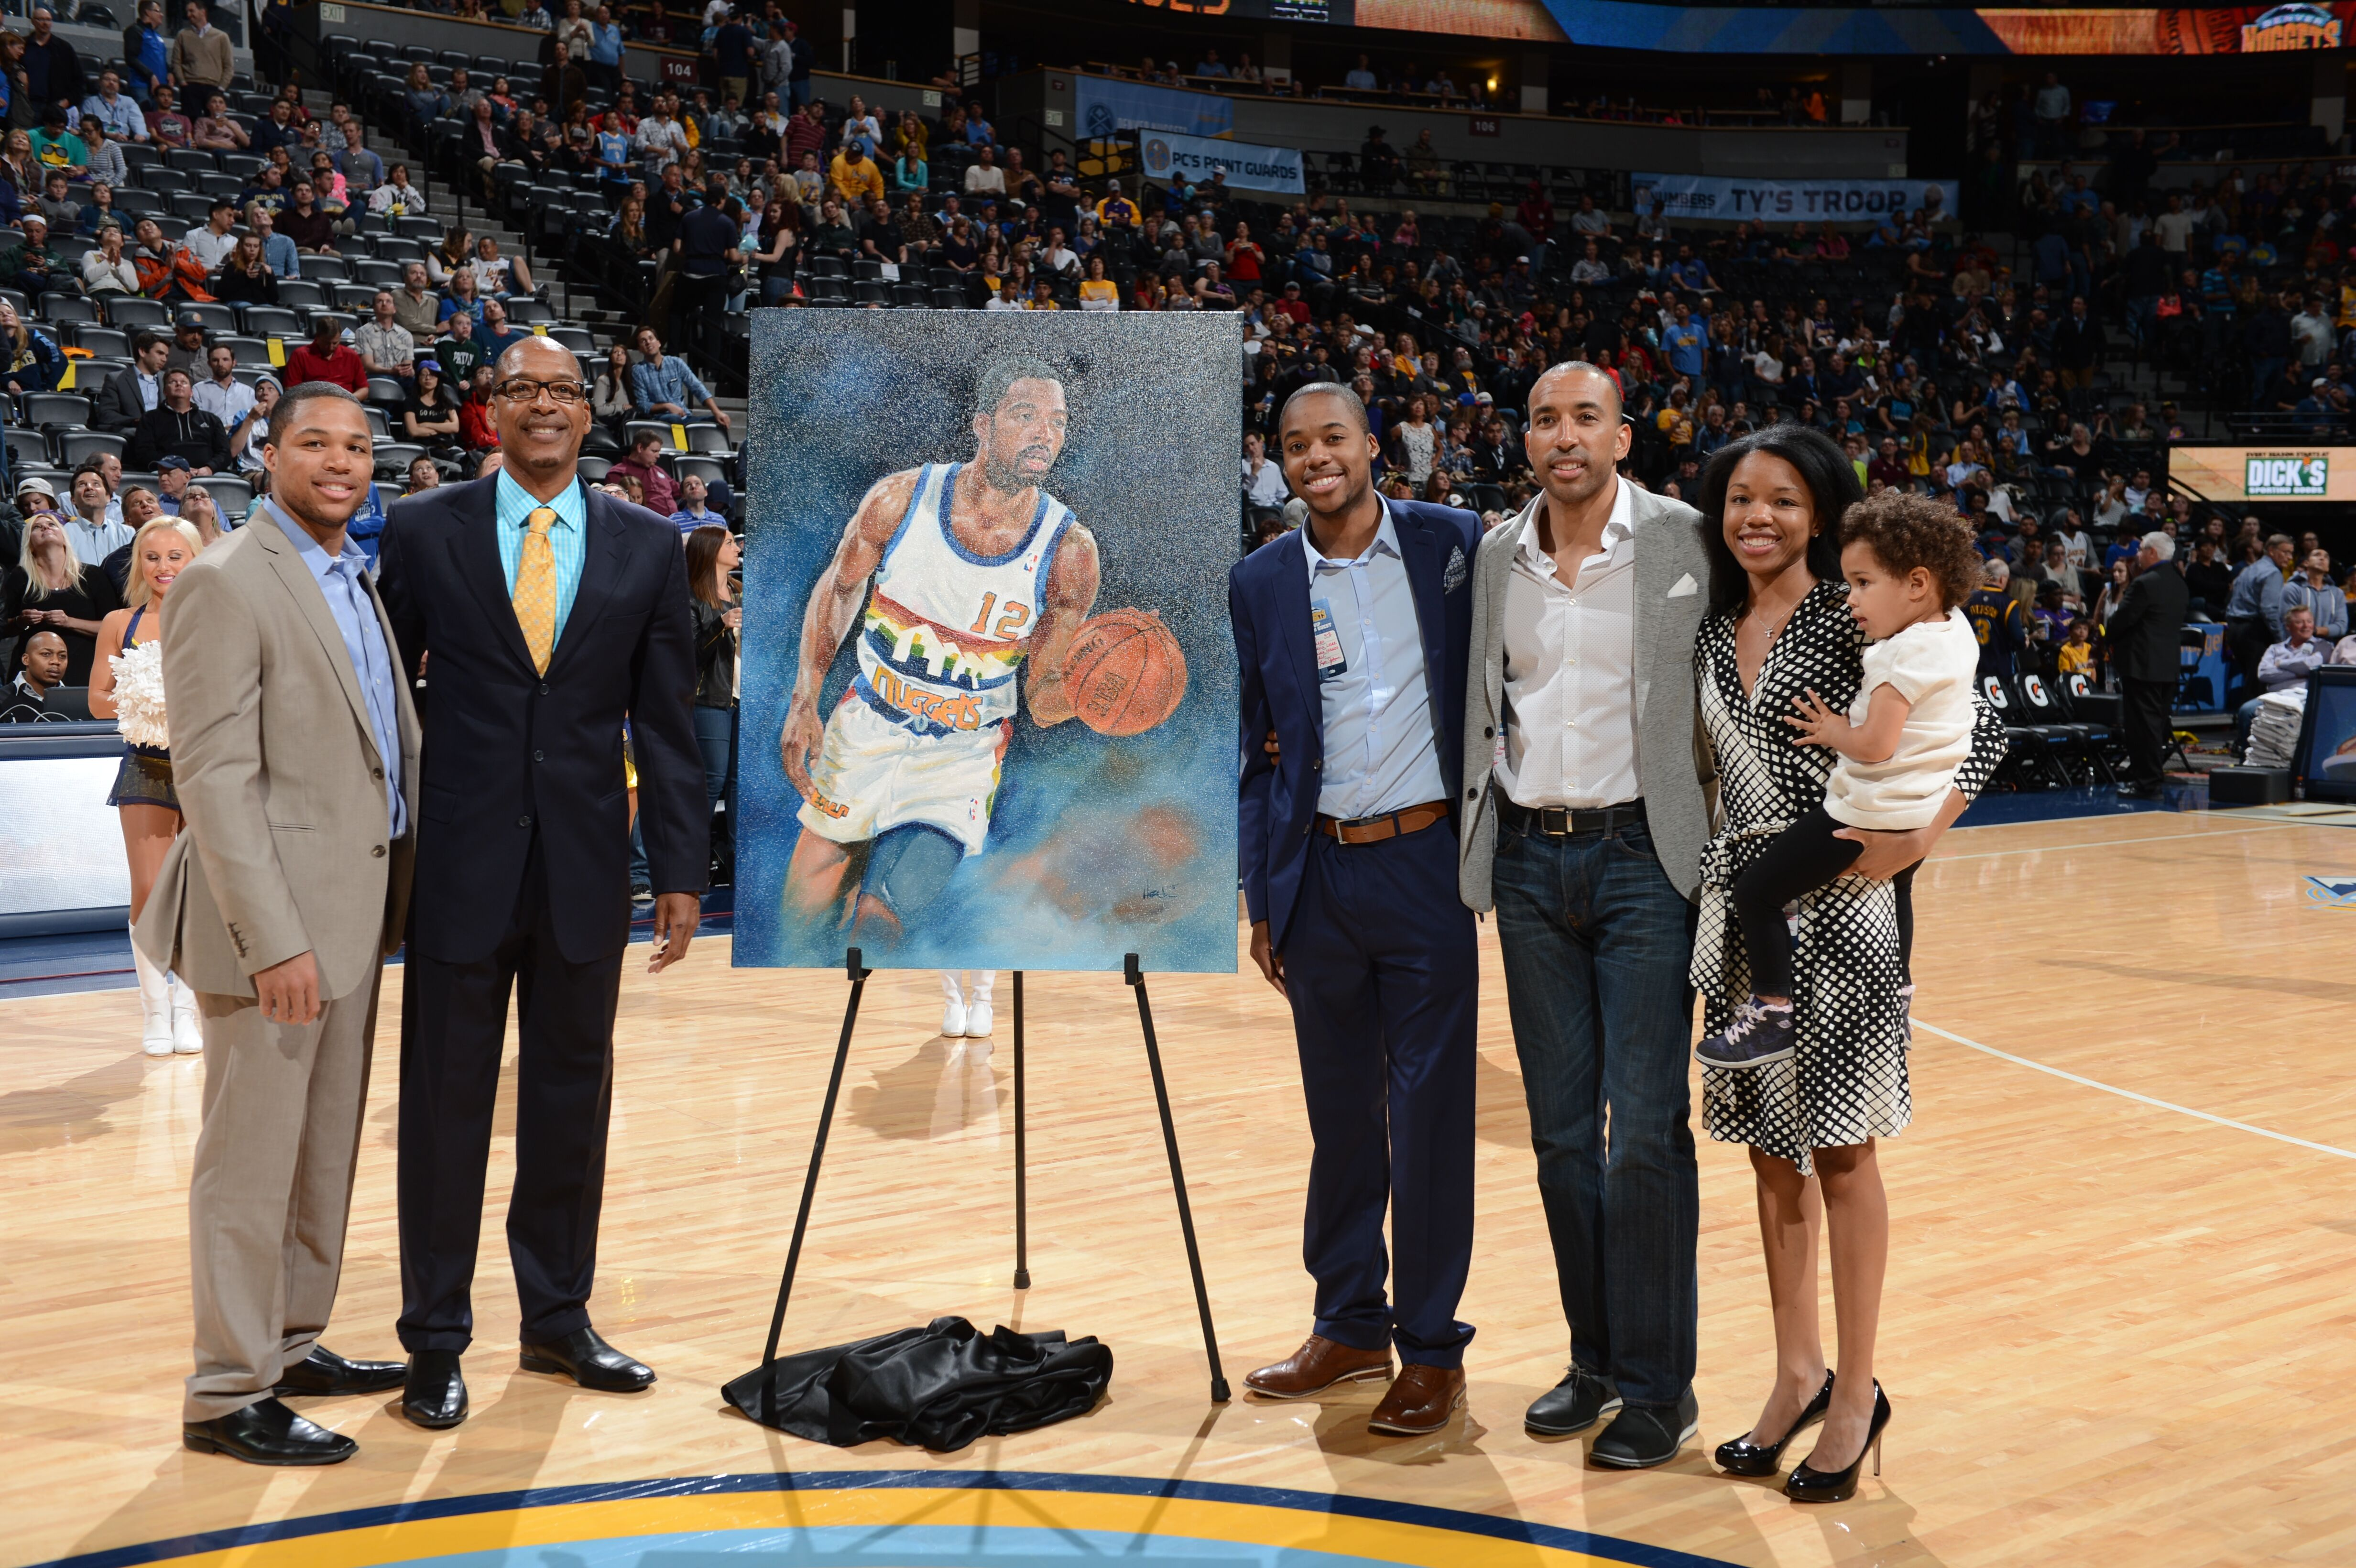 DENVER, CO - APRIL 8: Former NBA player Lafayette 'Fat' Lever is honored at halftime during the game between the Denver Nuggets and the Los Angeles Lakers on April 8, 2015 at the Pepsi Center in Denver, Colorado. NOTE TO USER: User expressly acknowledges and agrees that, by downloading and or using this Photograph, user is consenting to the terms and conditions of the Getty Images License Agreement. Mandatory Copyright Notice: Copyright 2015 NBAE (Photo by Garrett Ellwood/NBAE via Getty Images)